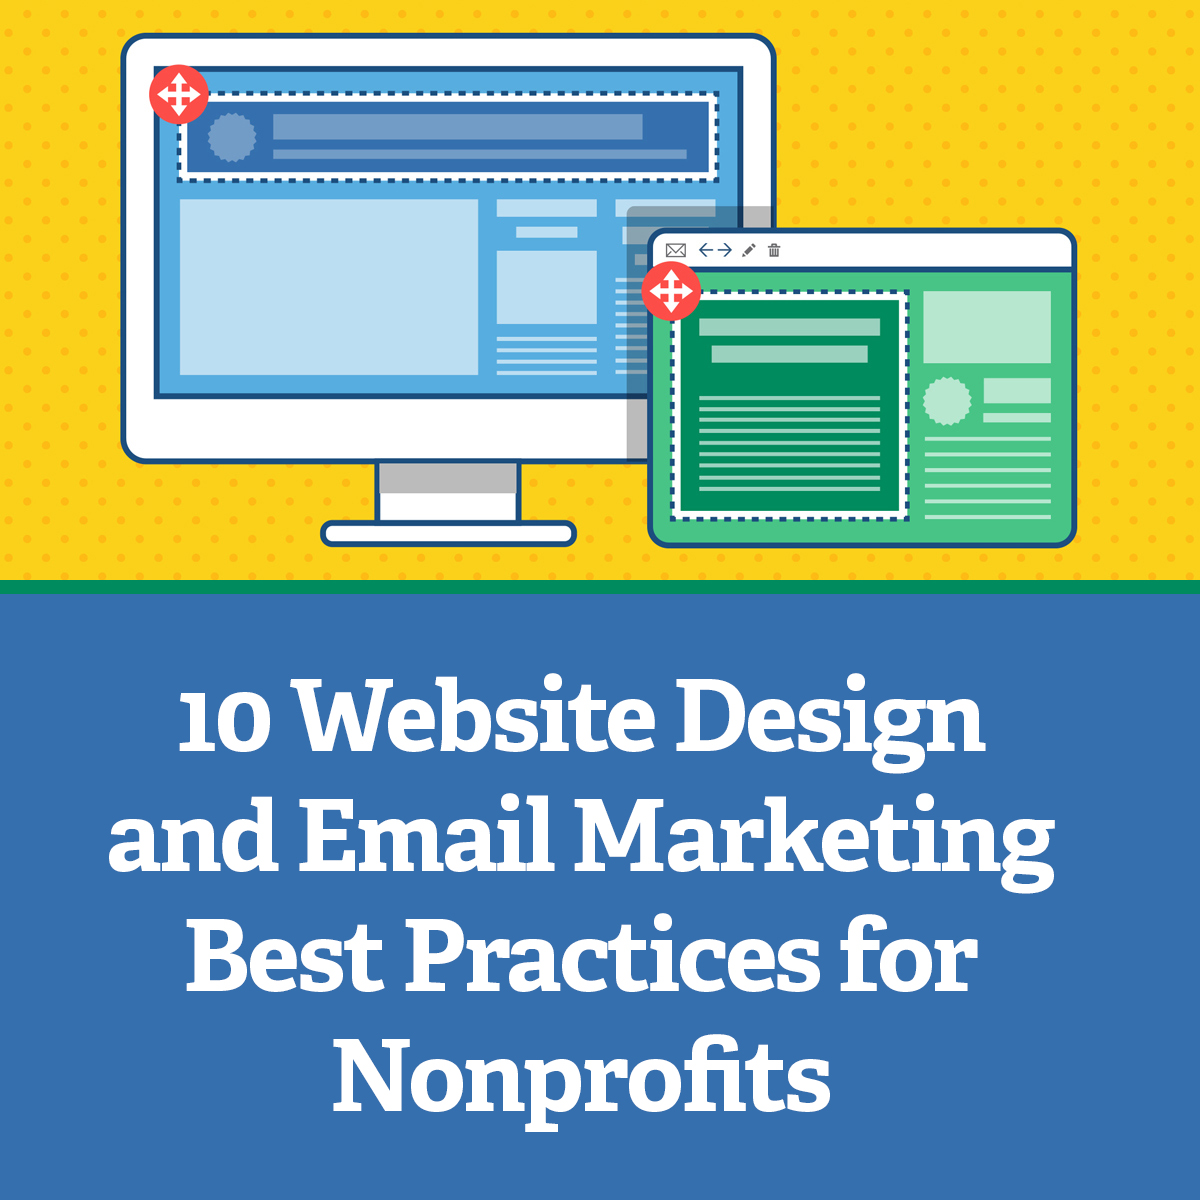 10 Website Design and Email Marketing Best Practices for Nonprofits